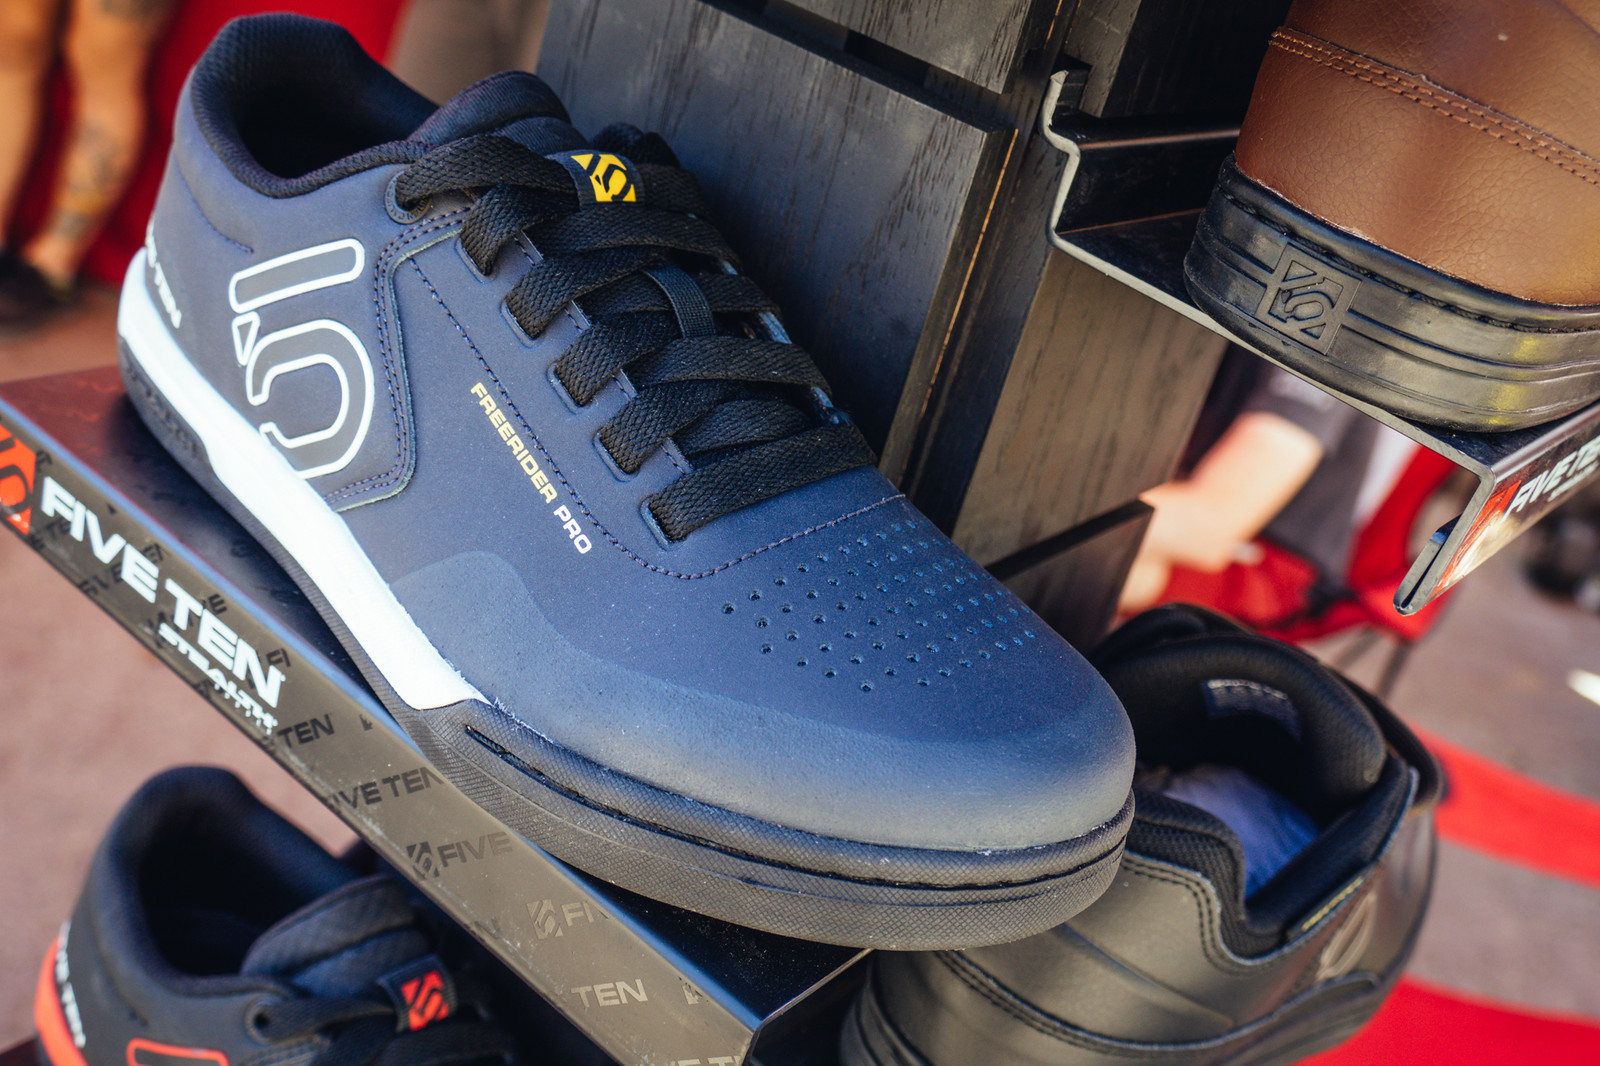 2017 Five Ten Shoes - PIT BITS - New 2017 Products from Crankworx Whistler - Mountain Biking Pictures - Vital MTB